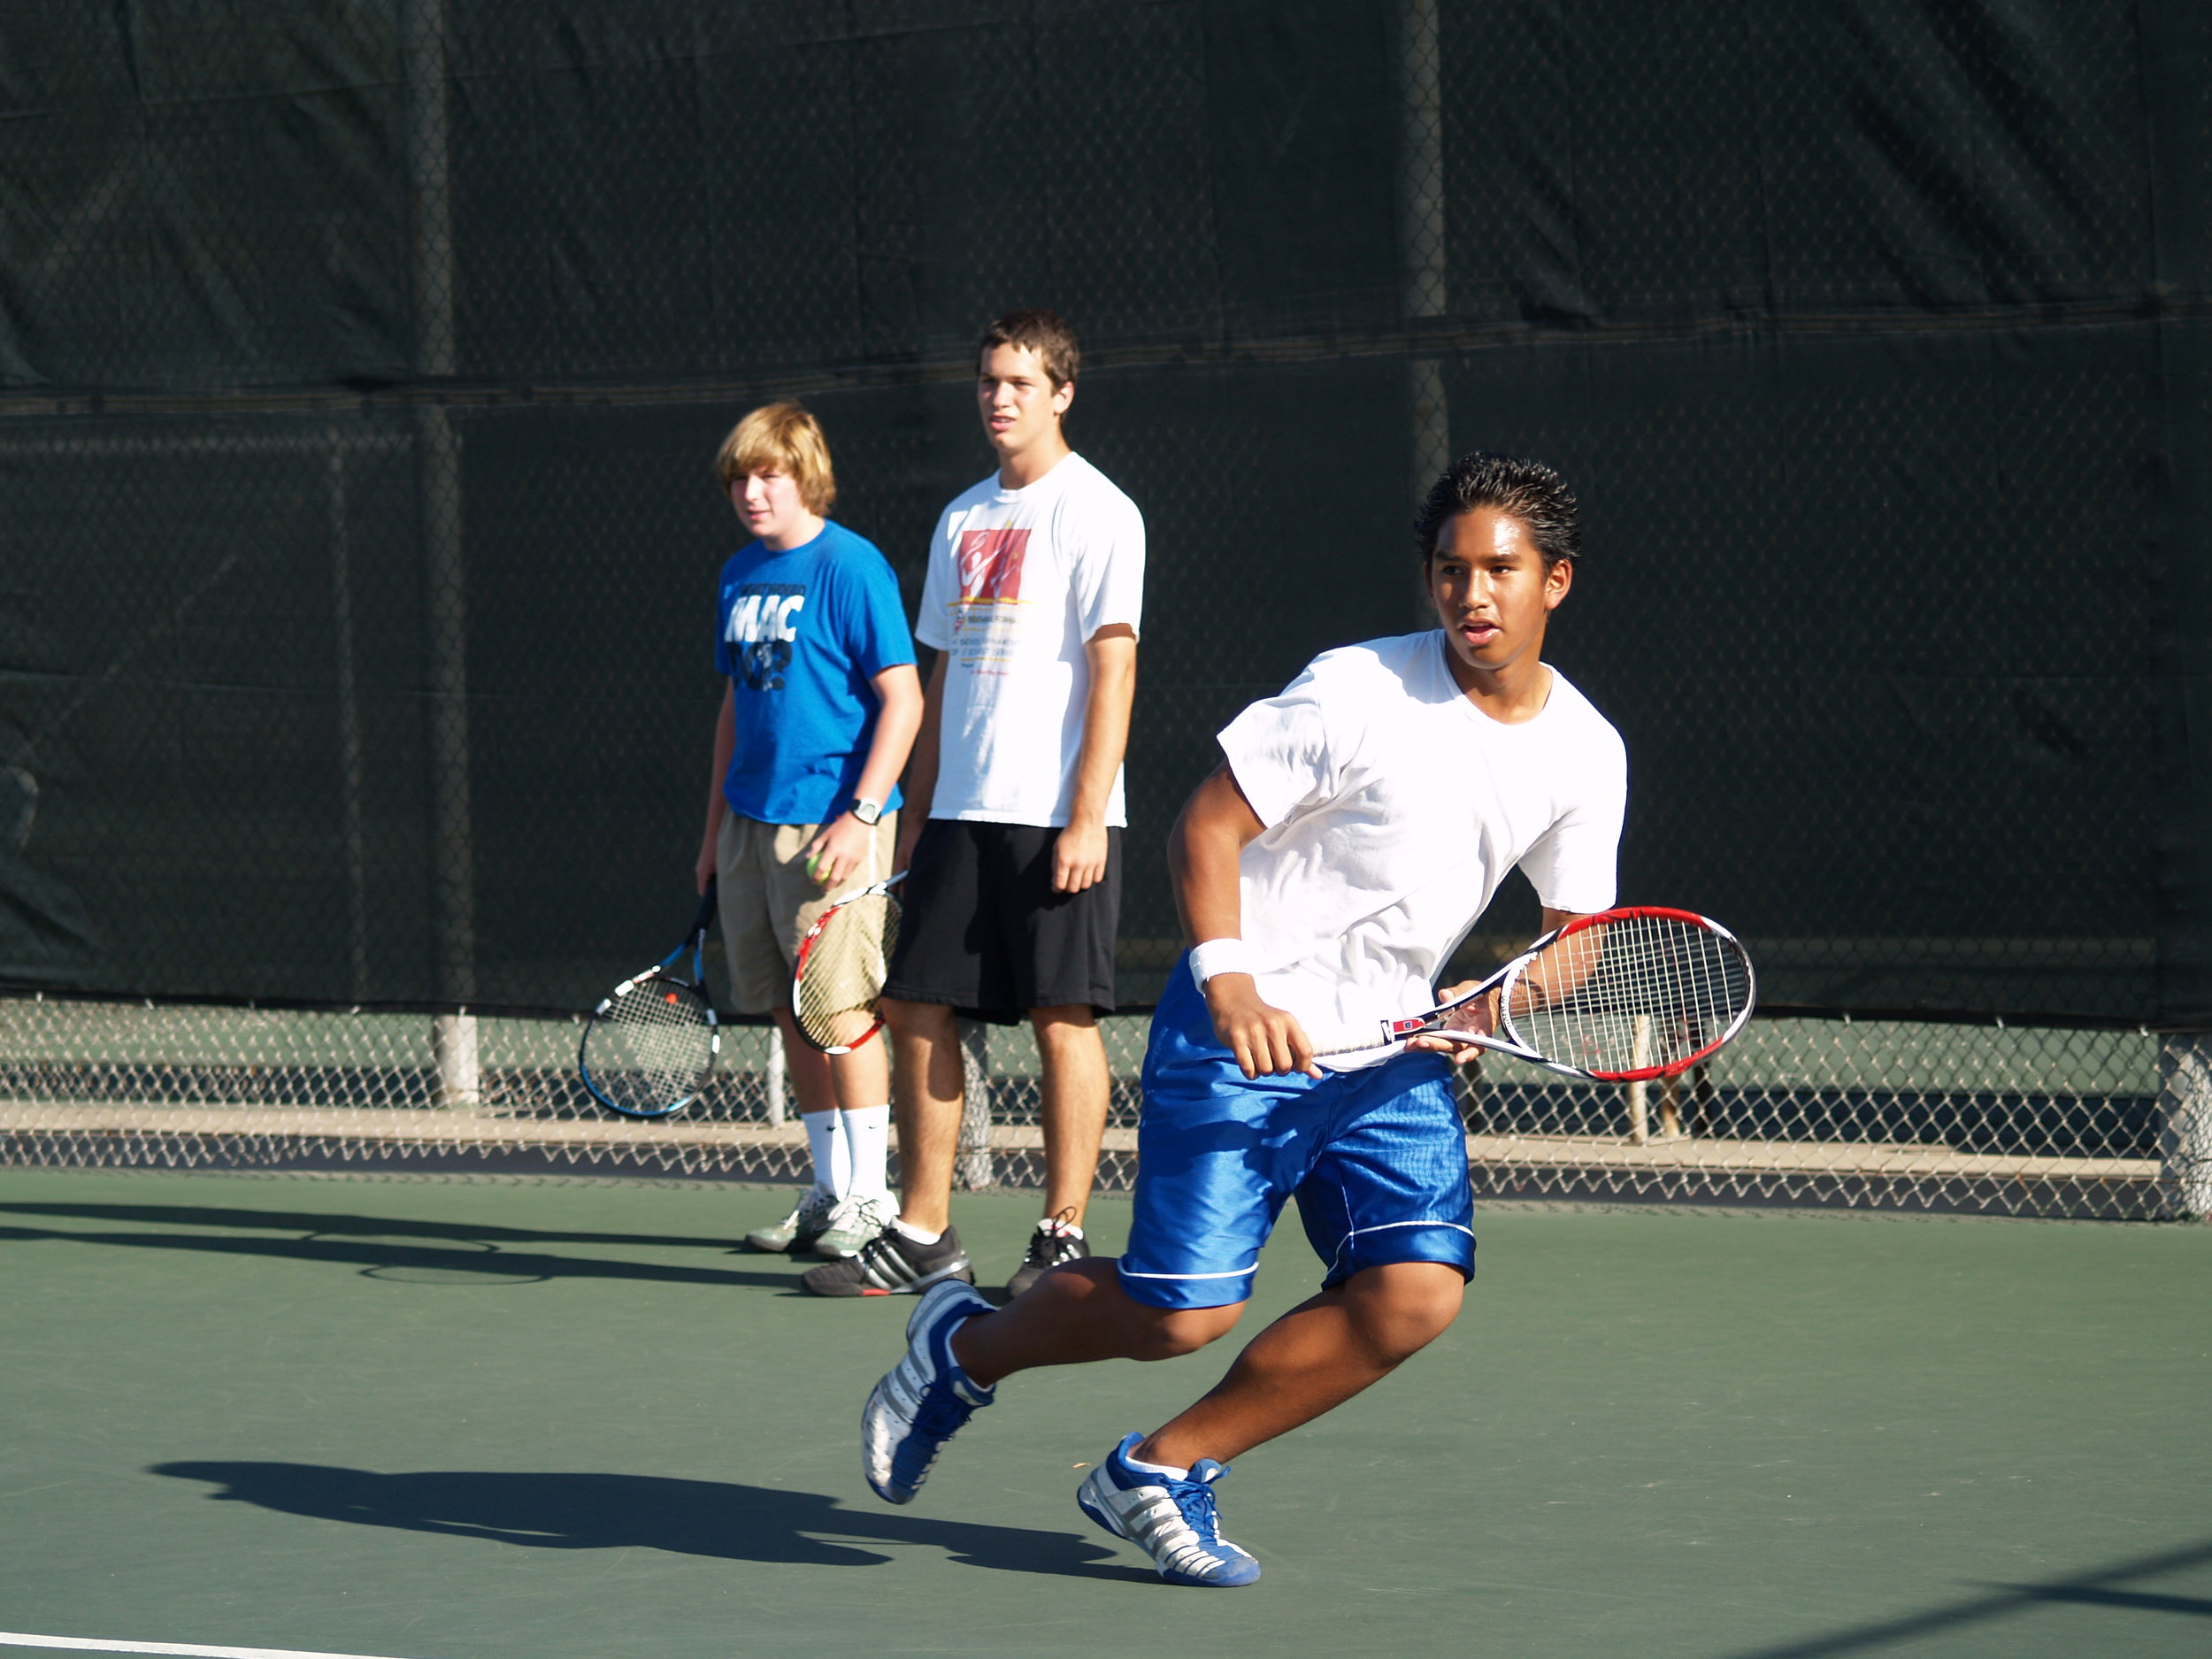 Running to catch the ball for a one-handed backhand.